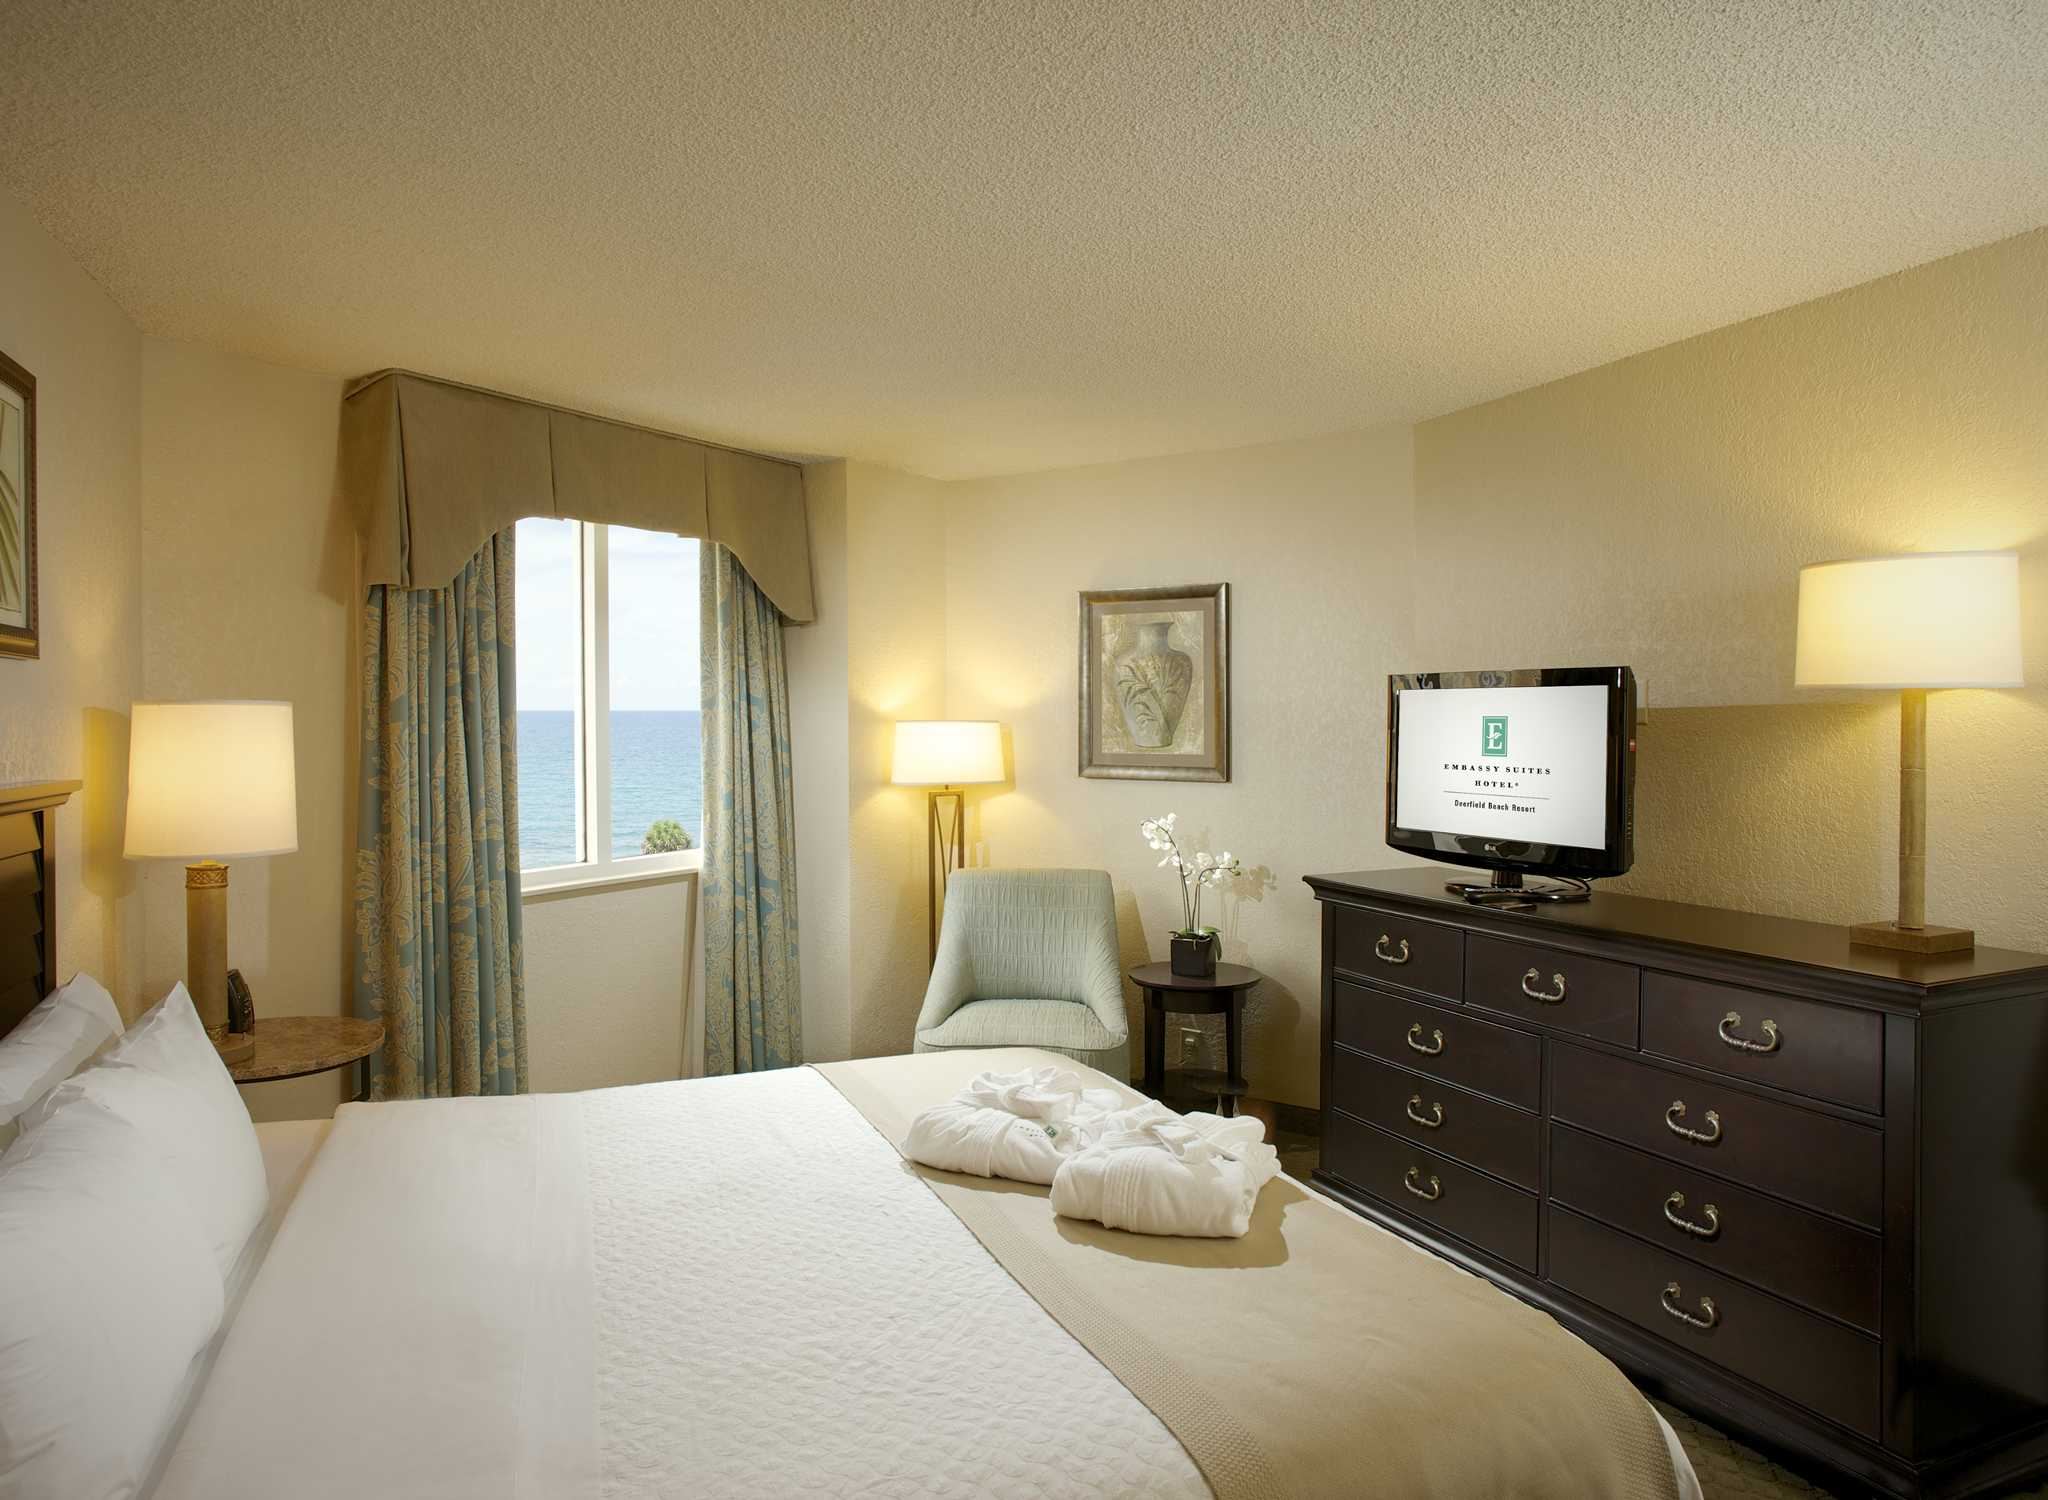 ha tel de deerfield beach ha tel embassy suites deerfield beach